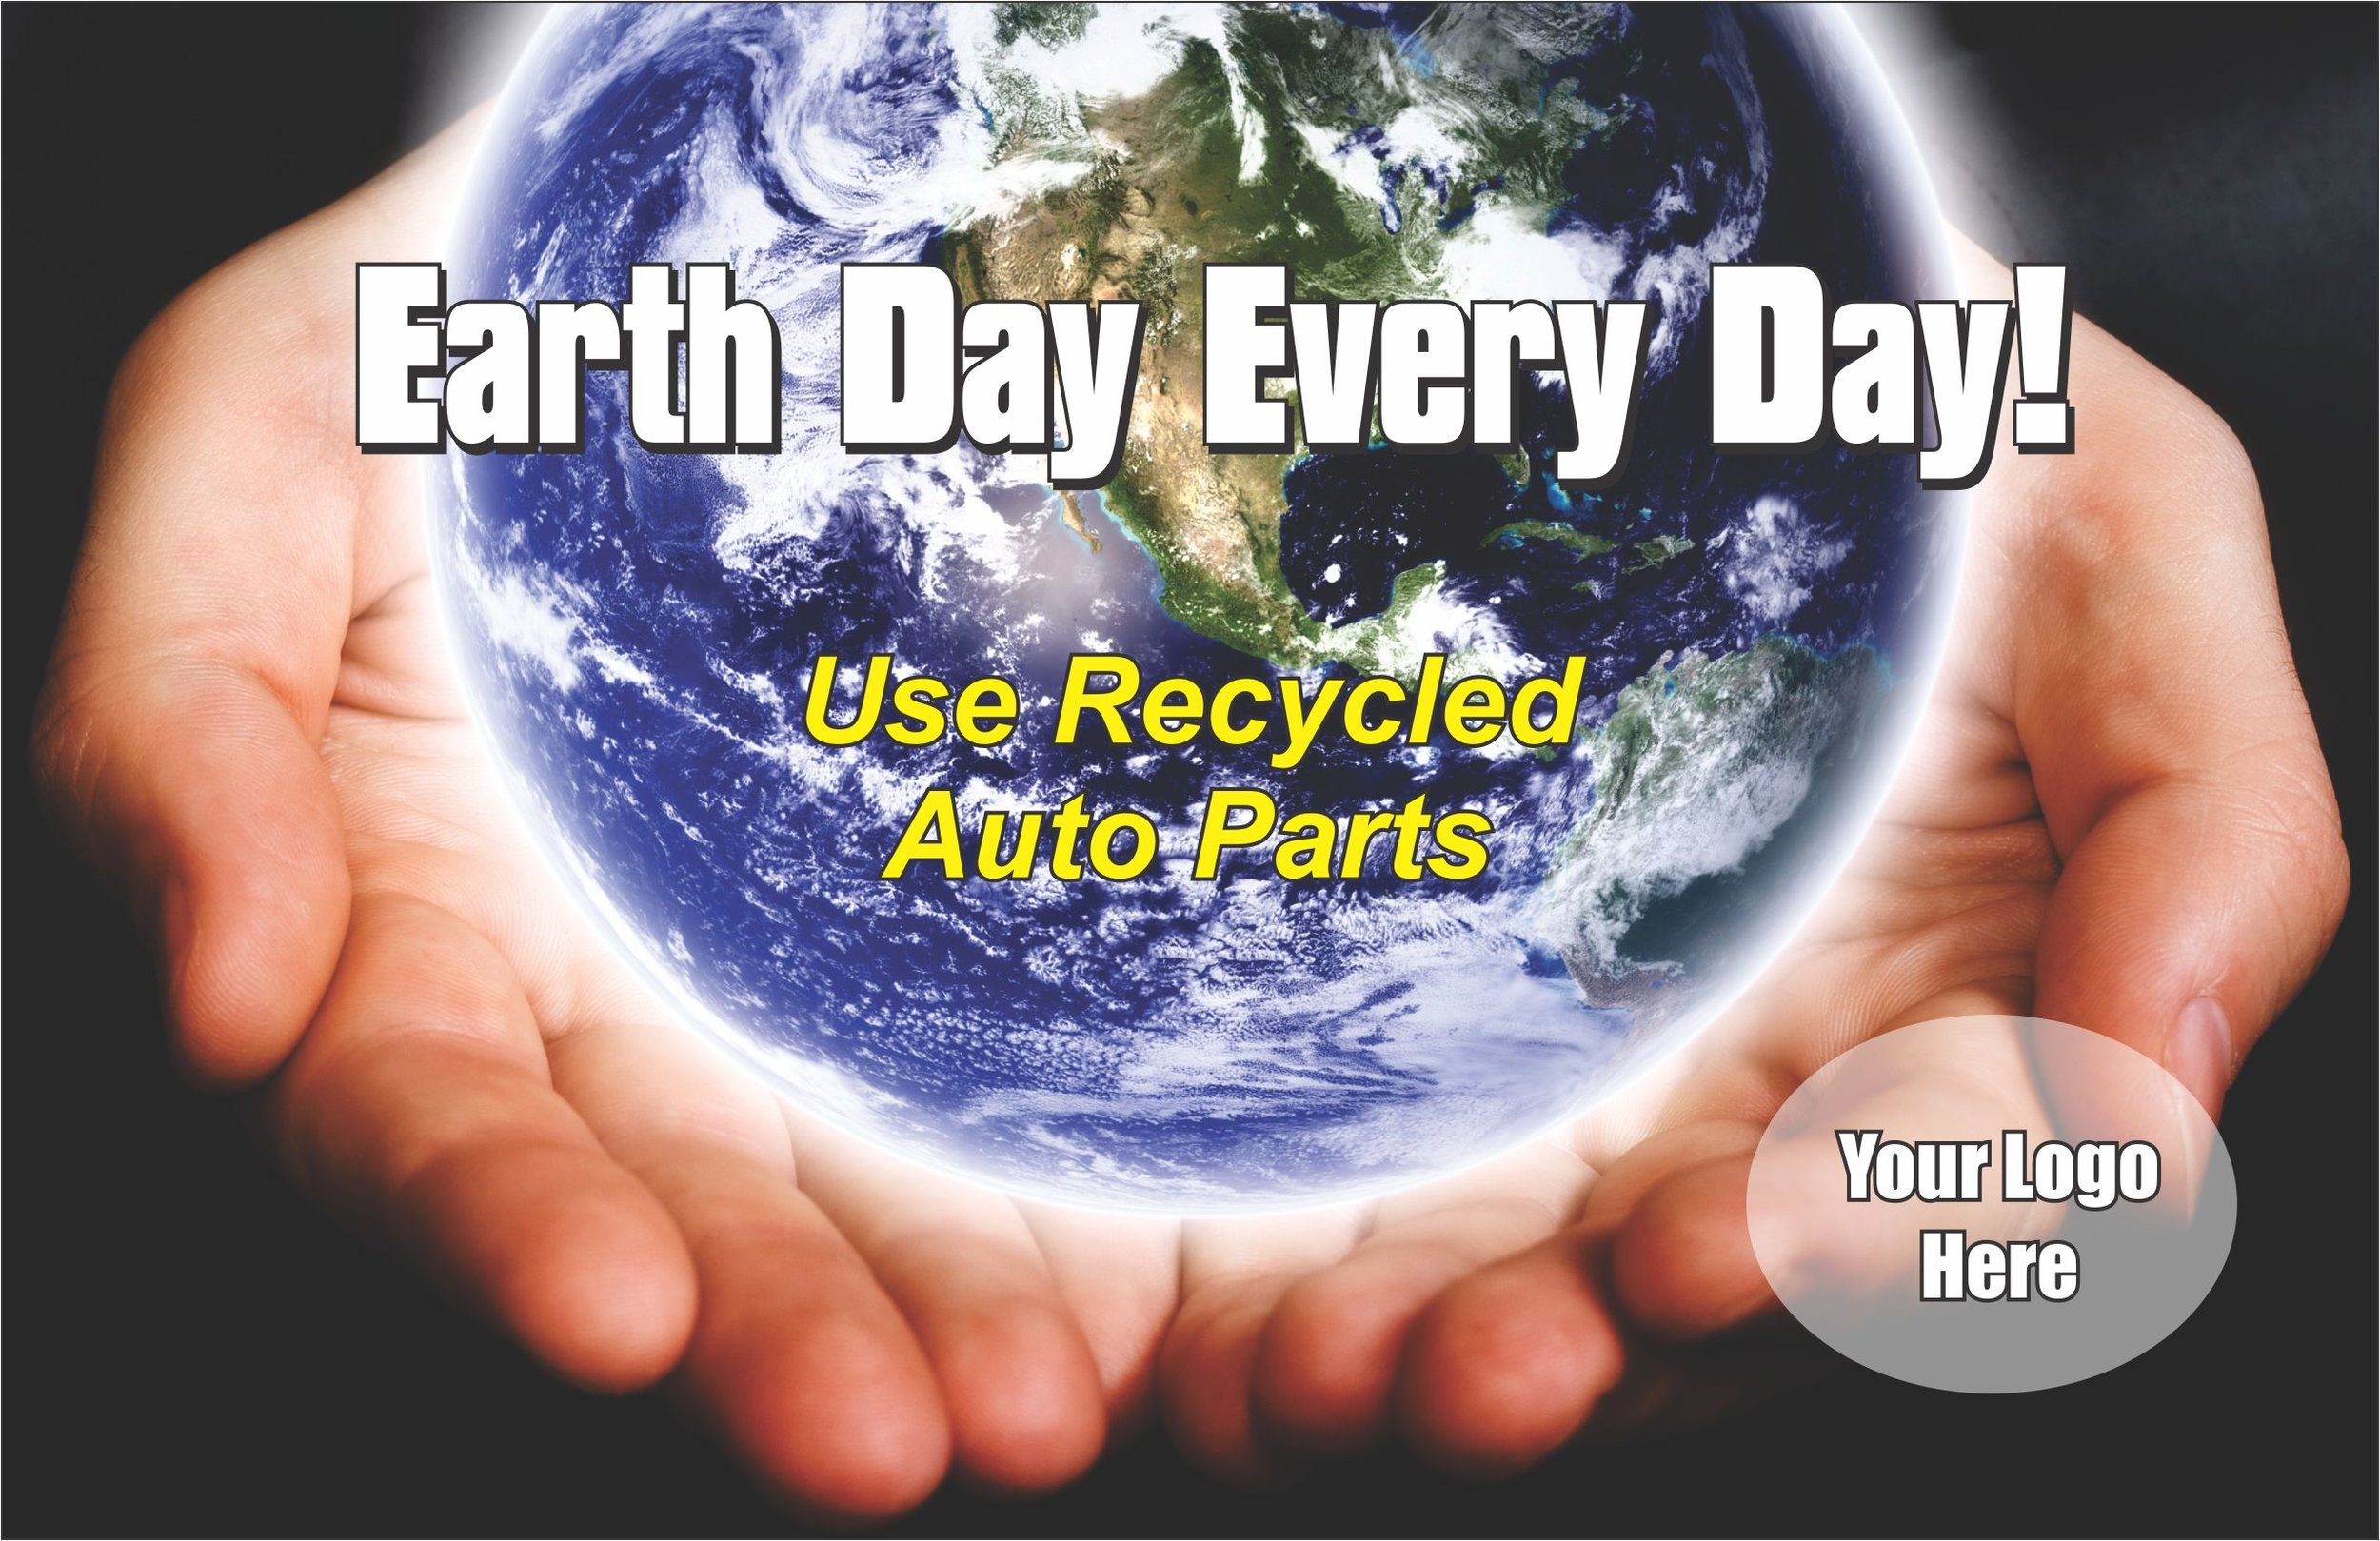 Earth Day Every Day 2.jpg